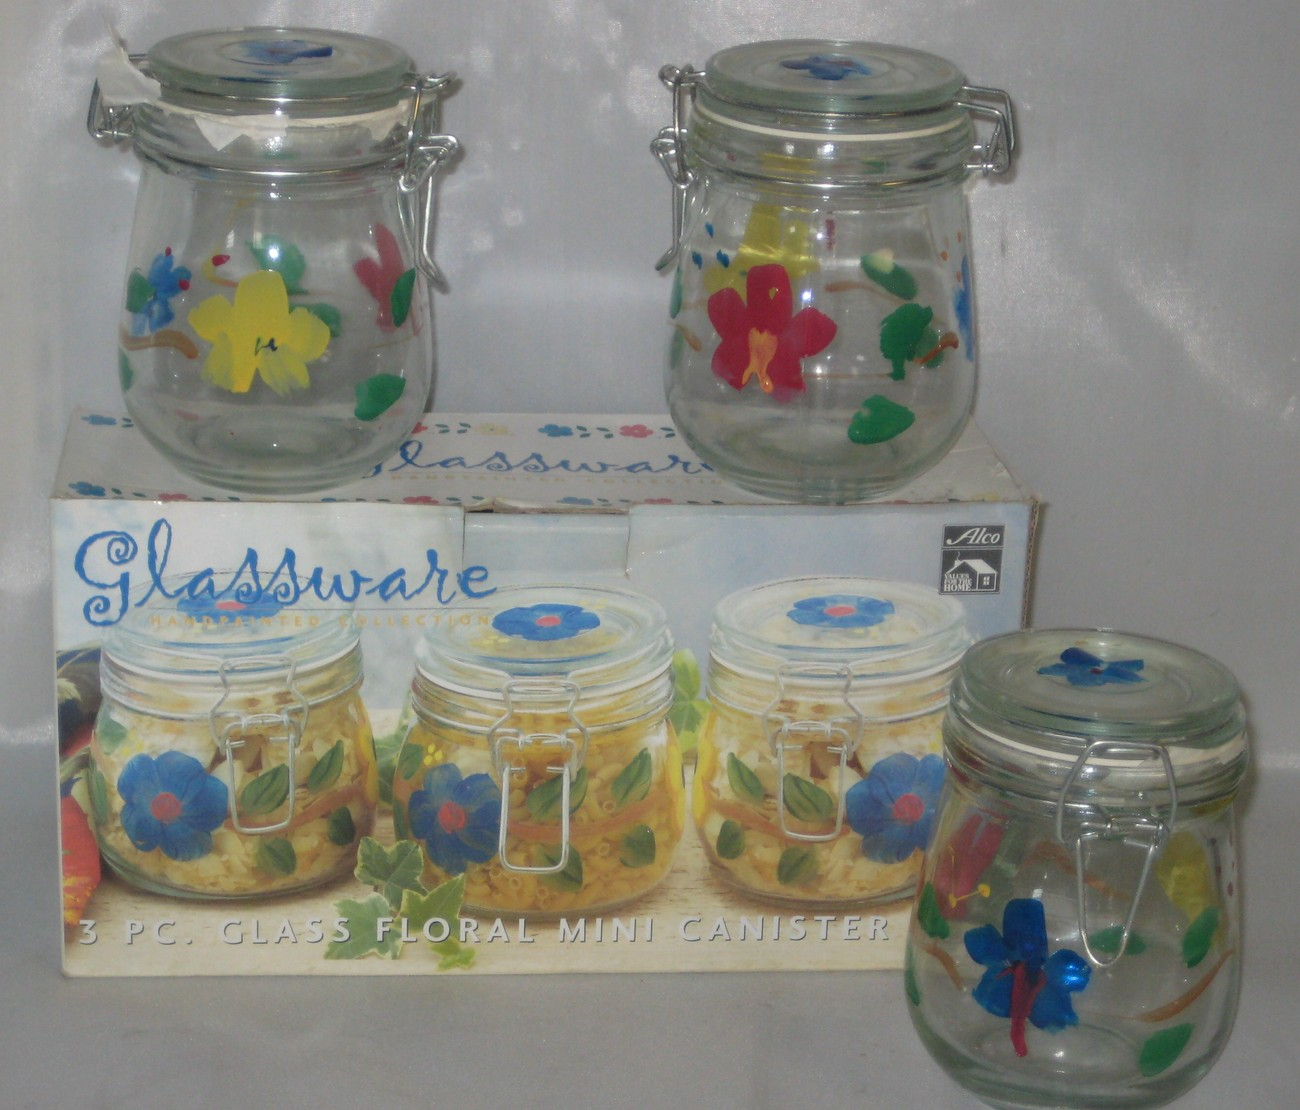 Alco glass handpainted floral mini canister set